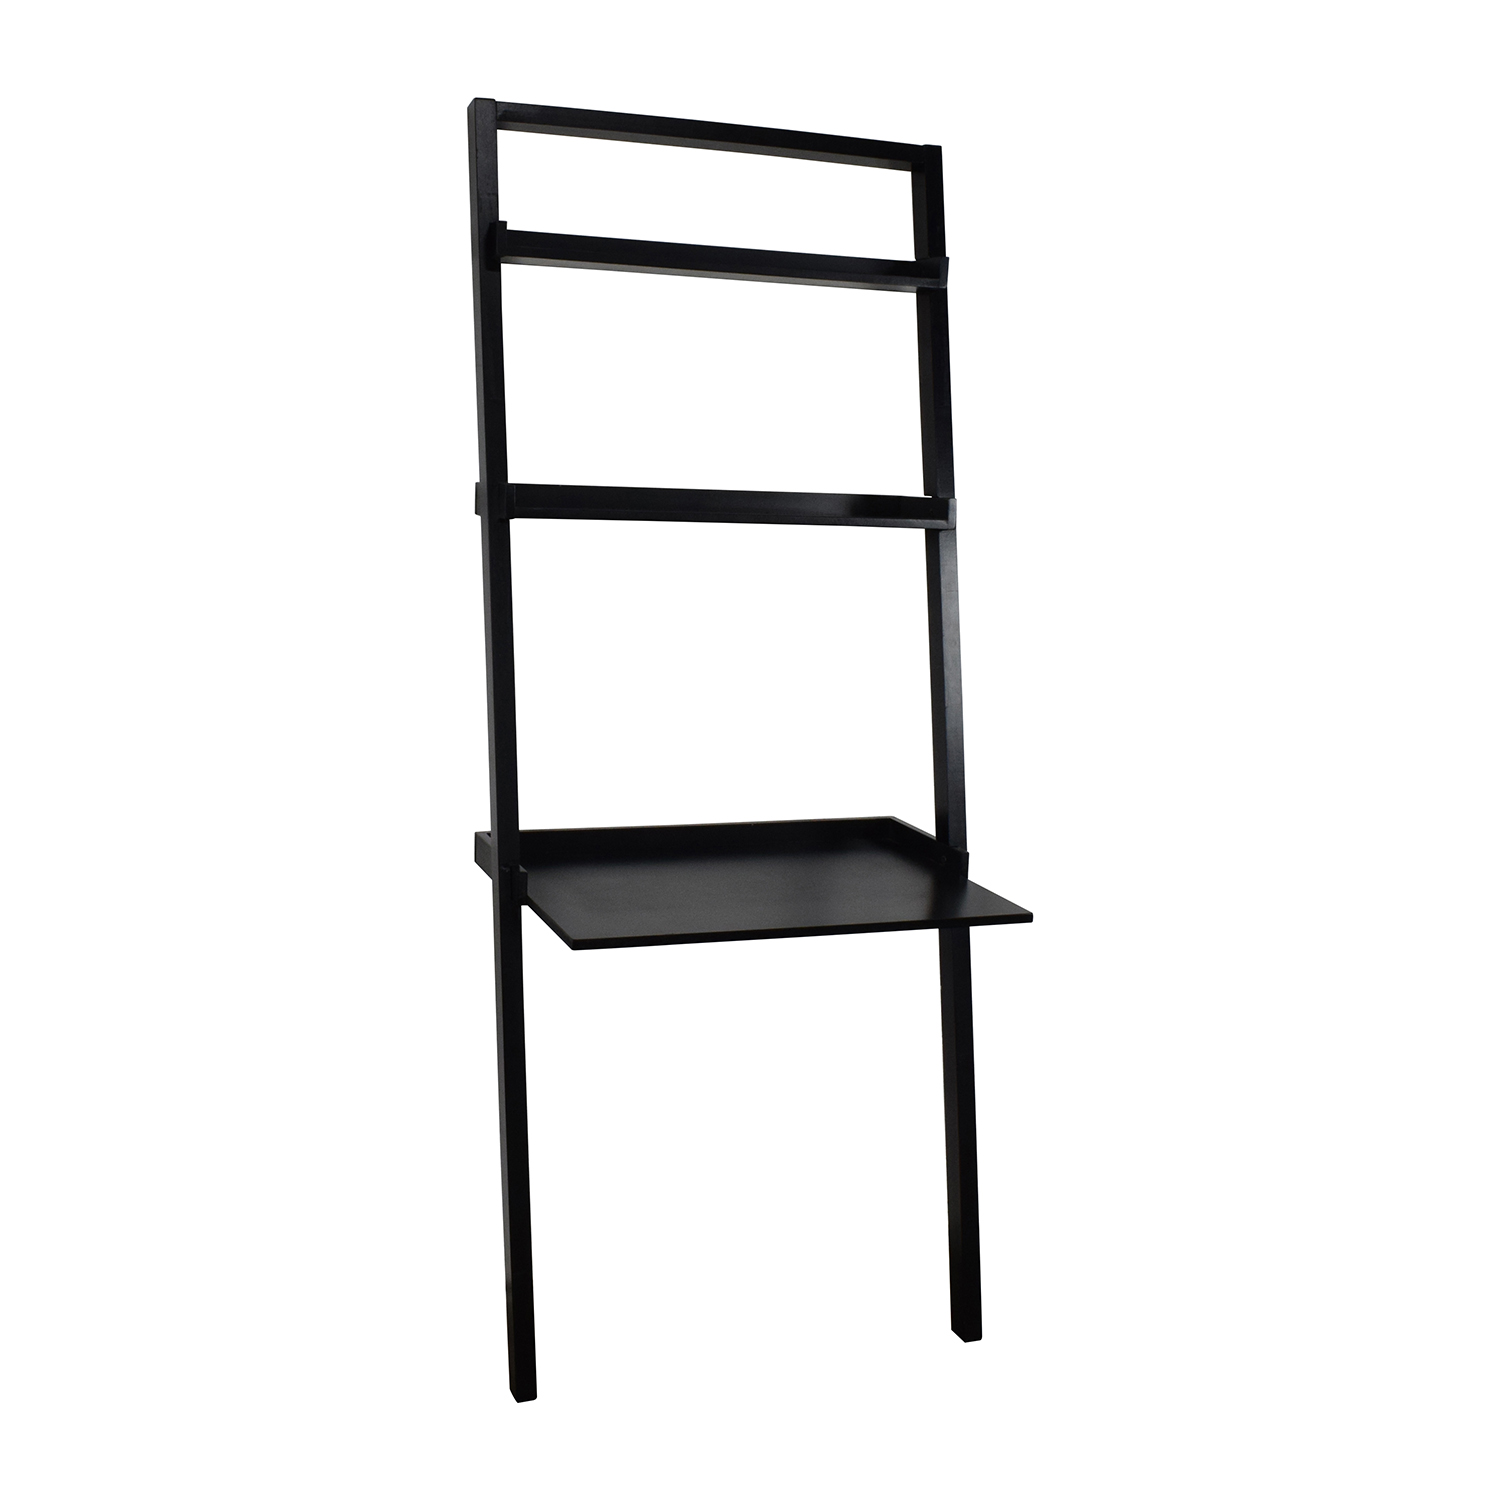 Table With Bookcase: Leaning Table With Book Shelf / Tables